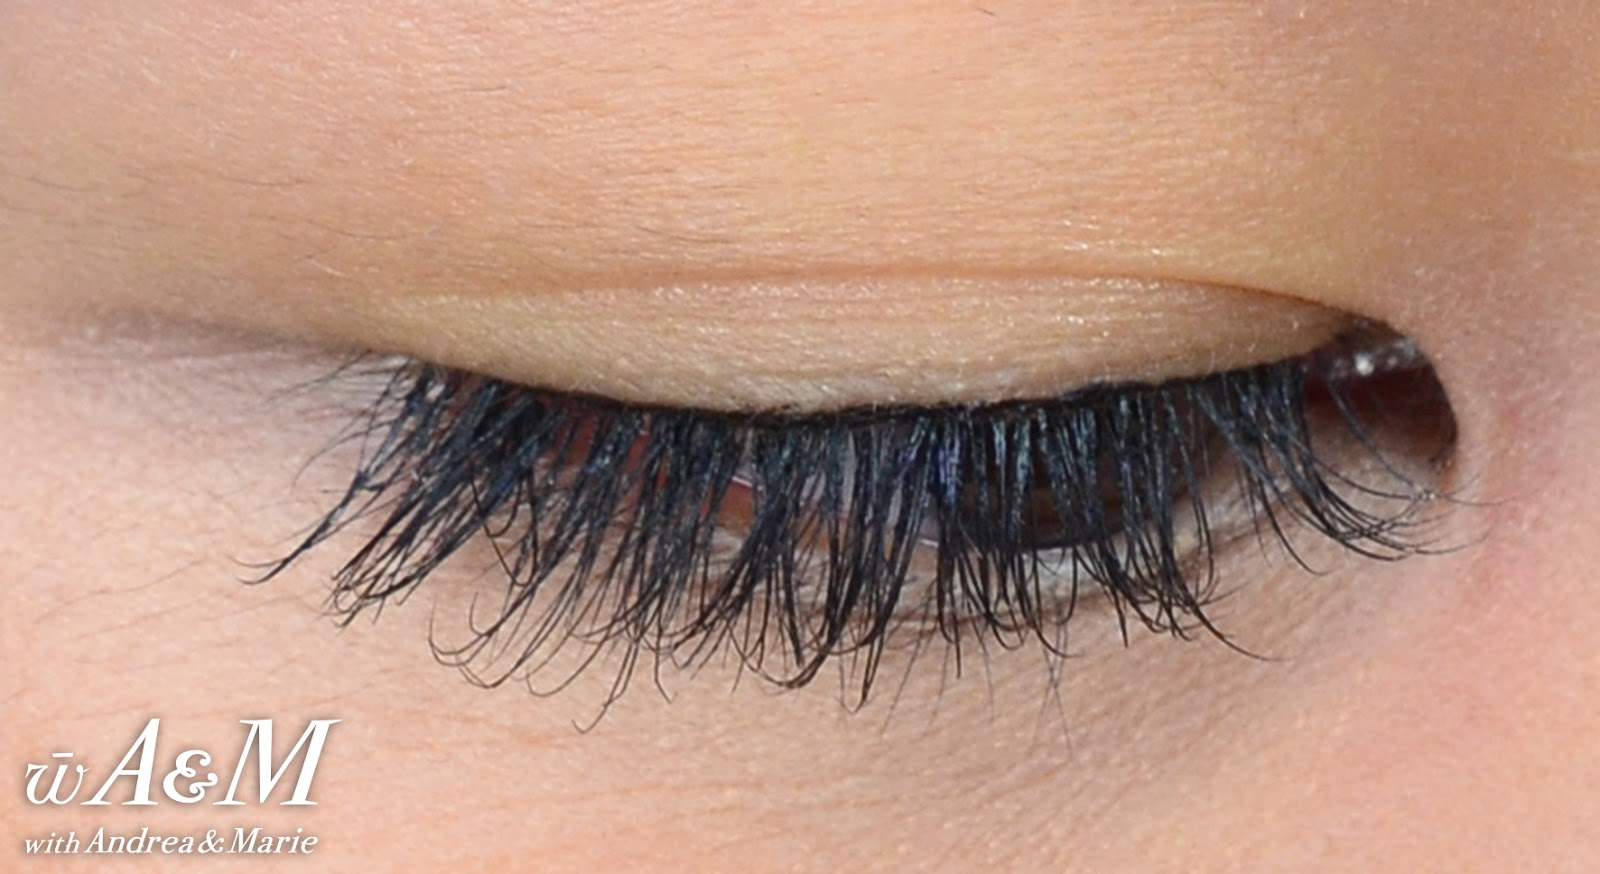 Withandreamarie Eyelash Extension From De Perfect Beauty